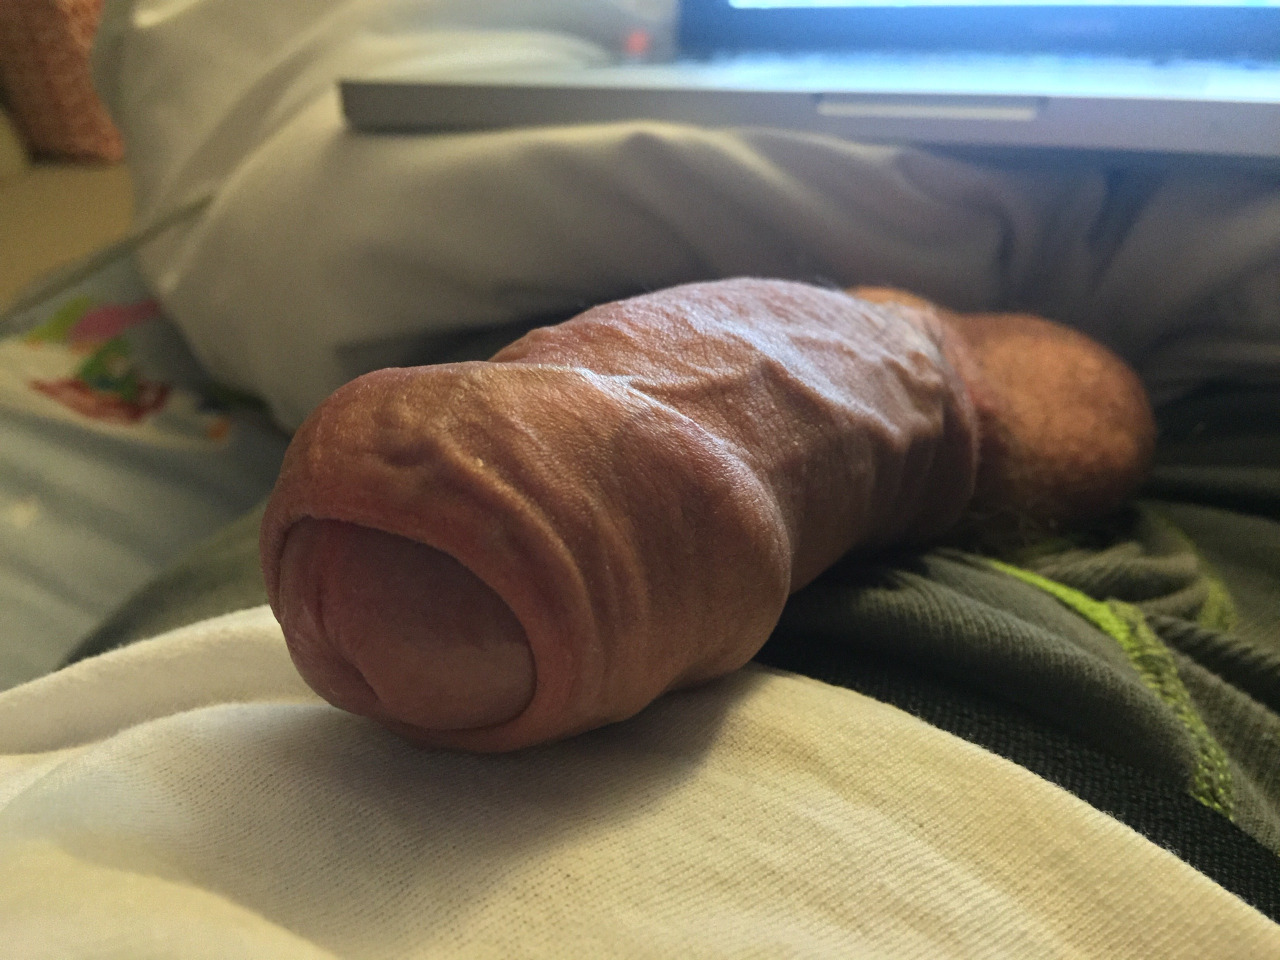 Penis head covered